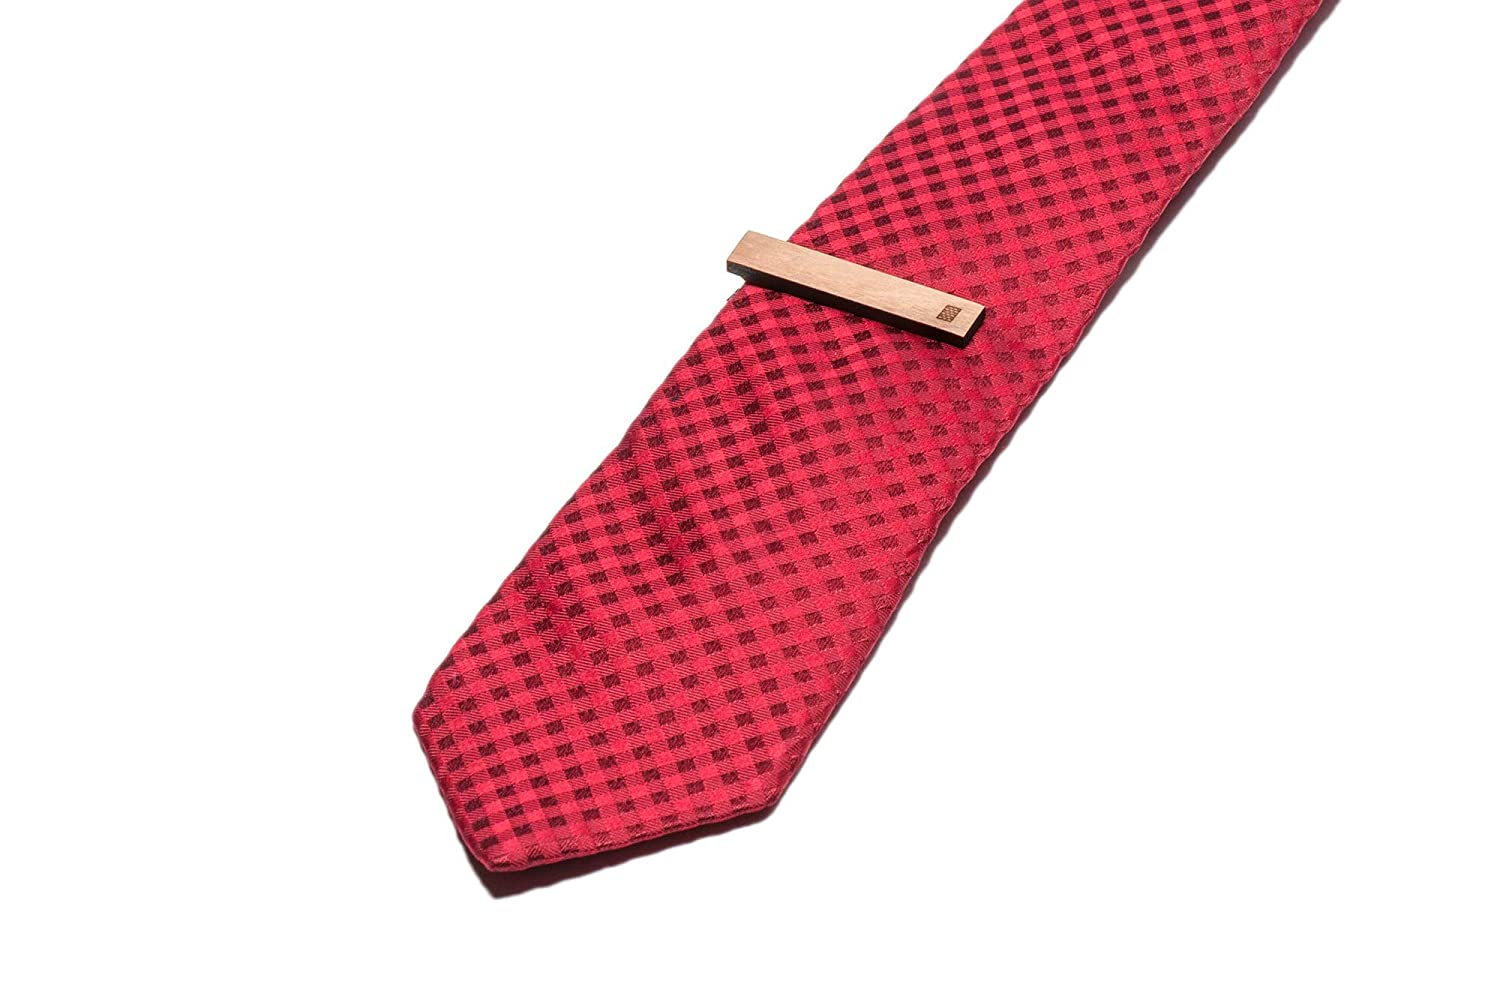 Wooden Accessories Company Wooden Tie Clips with Laser Engraved Wall Design Cherry Wood Tie Bar Engraved in The USA